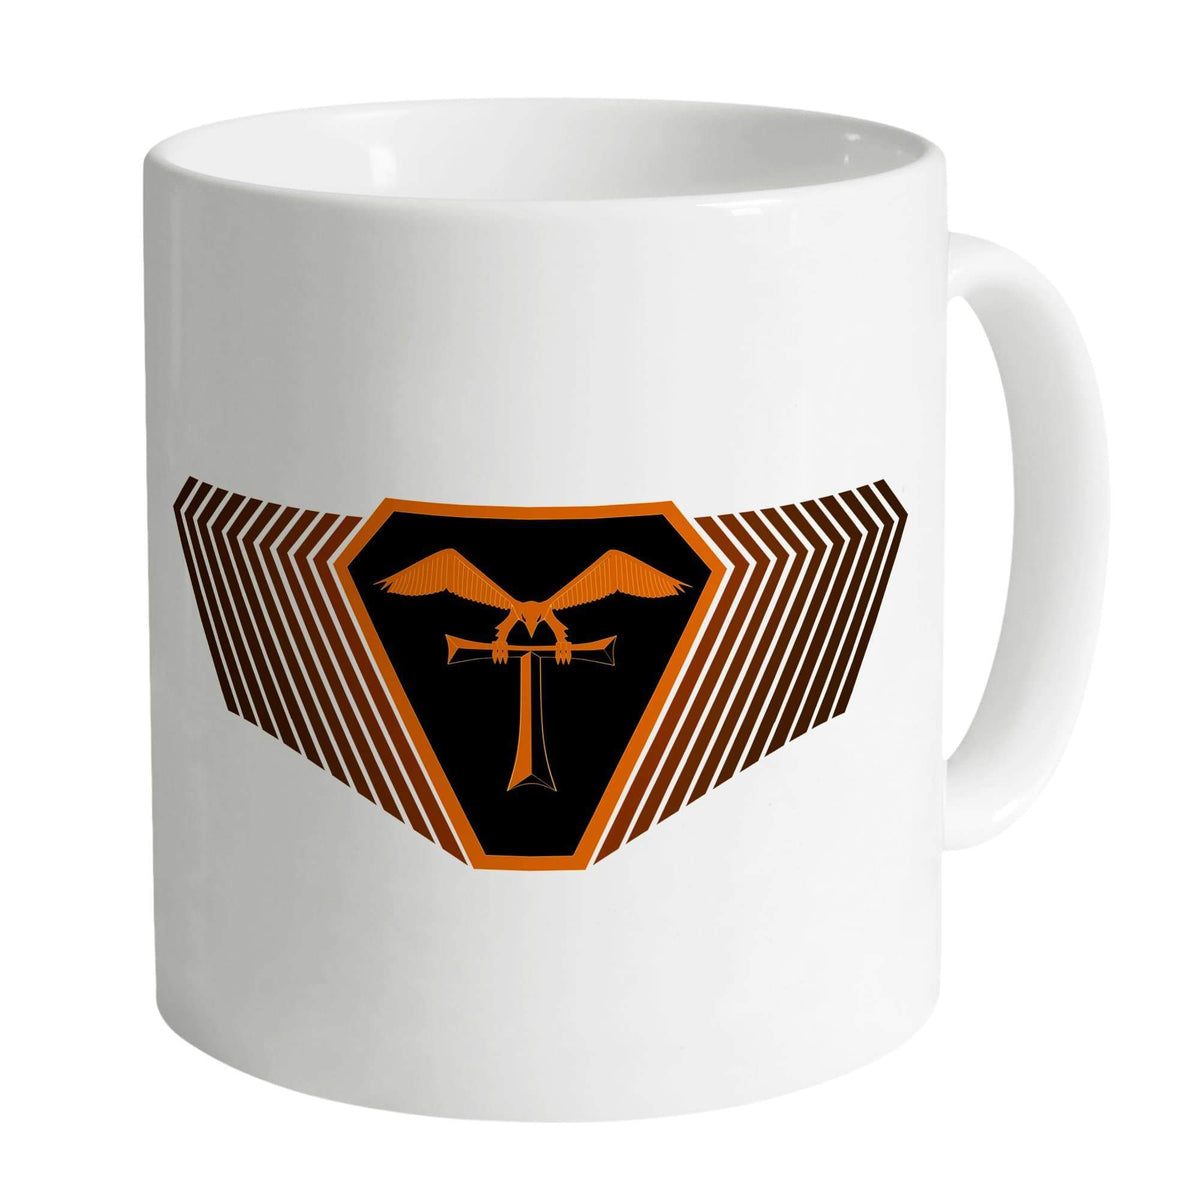 Terrahawks Orange Emblem on a White Mug [Official & Exclusive] - The Gerry Anderson Store